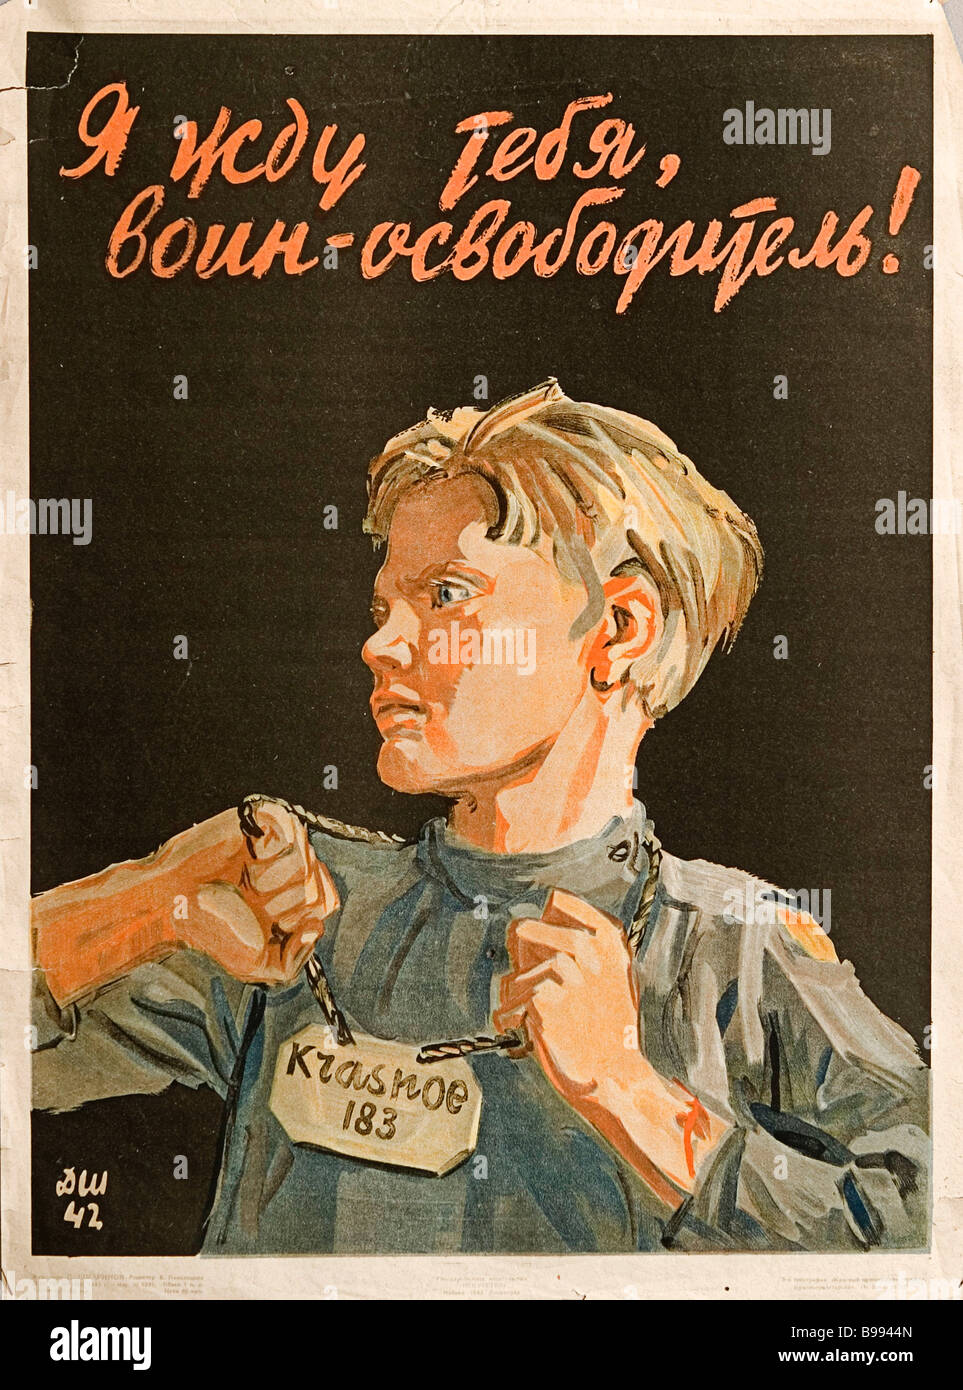 I m Waiting for You Soldier Liberator A poster by Dementy Shmarinov 1942 - Stock Image